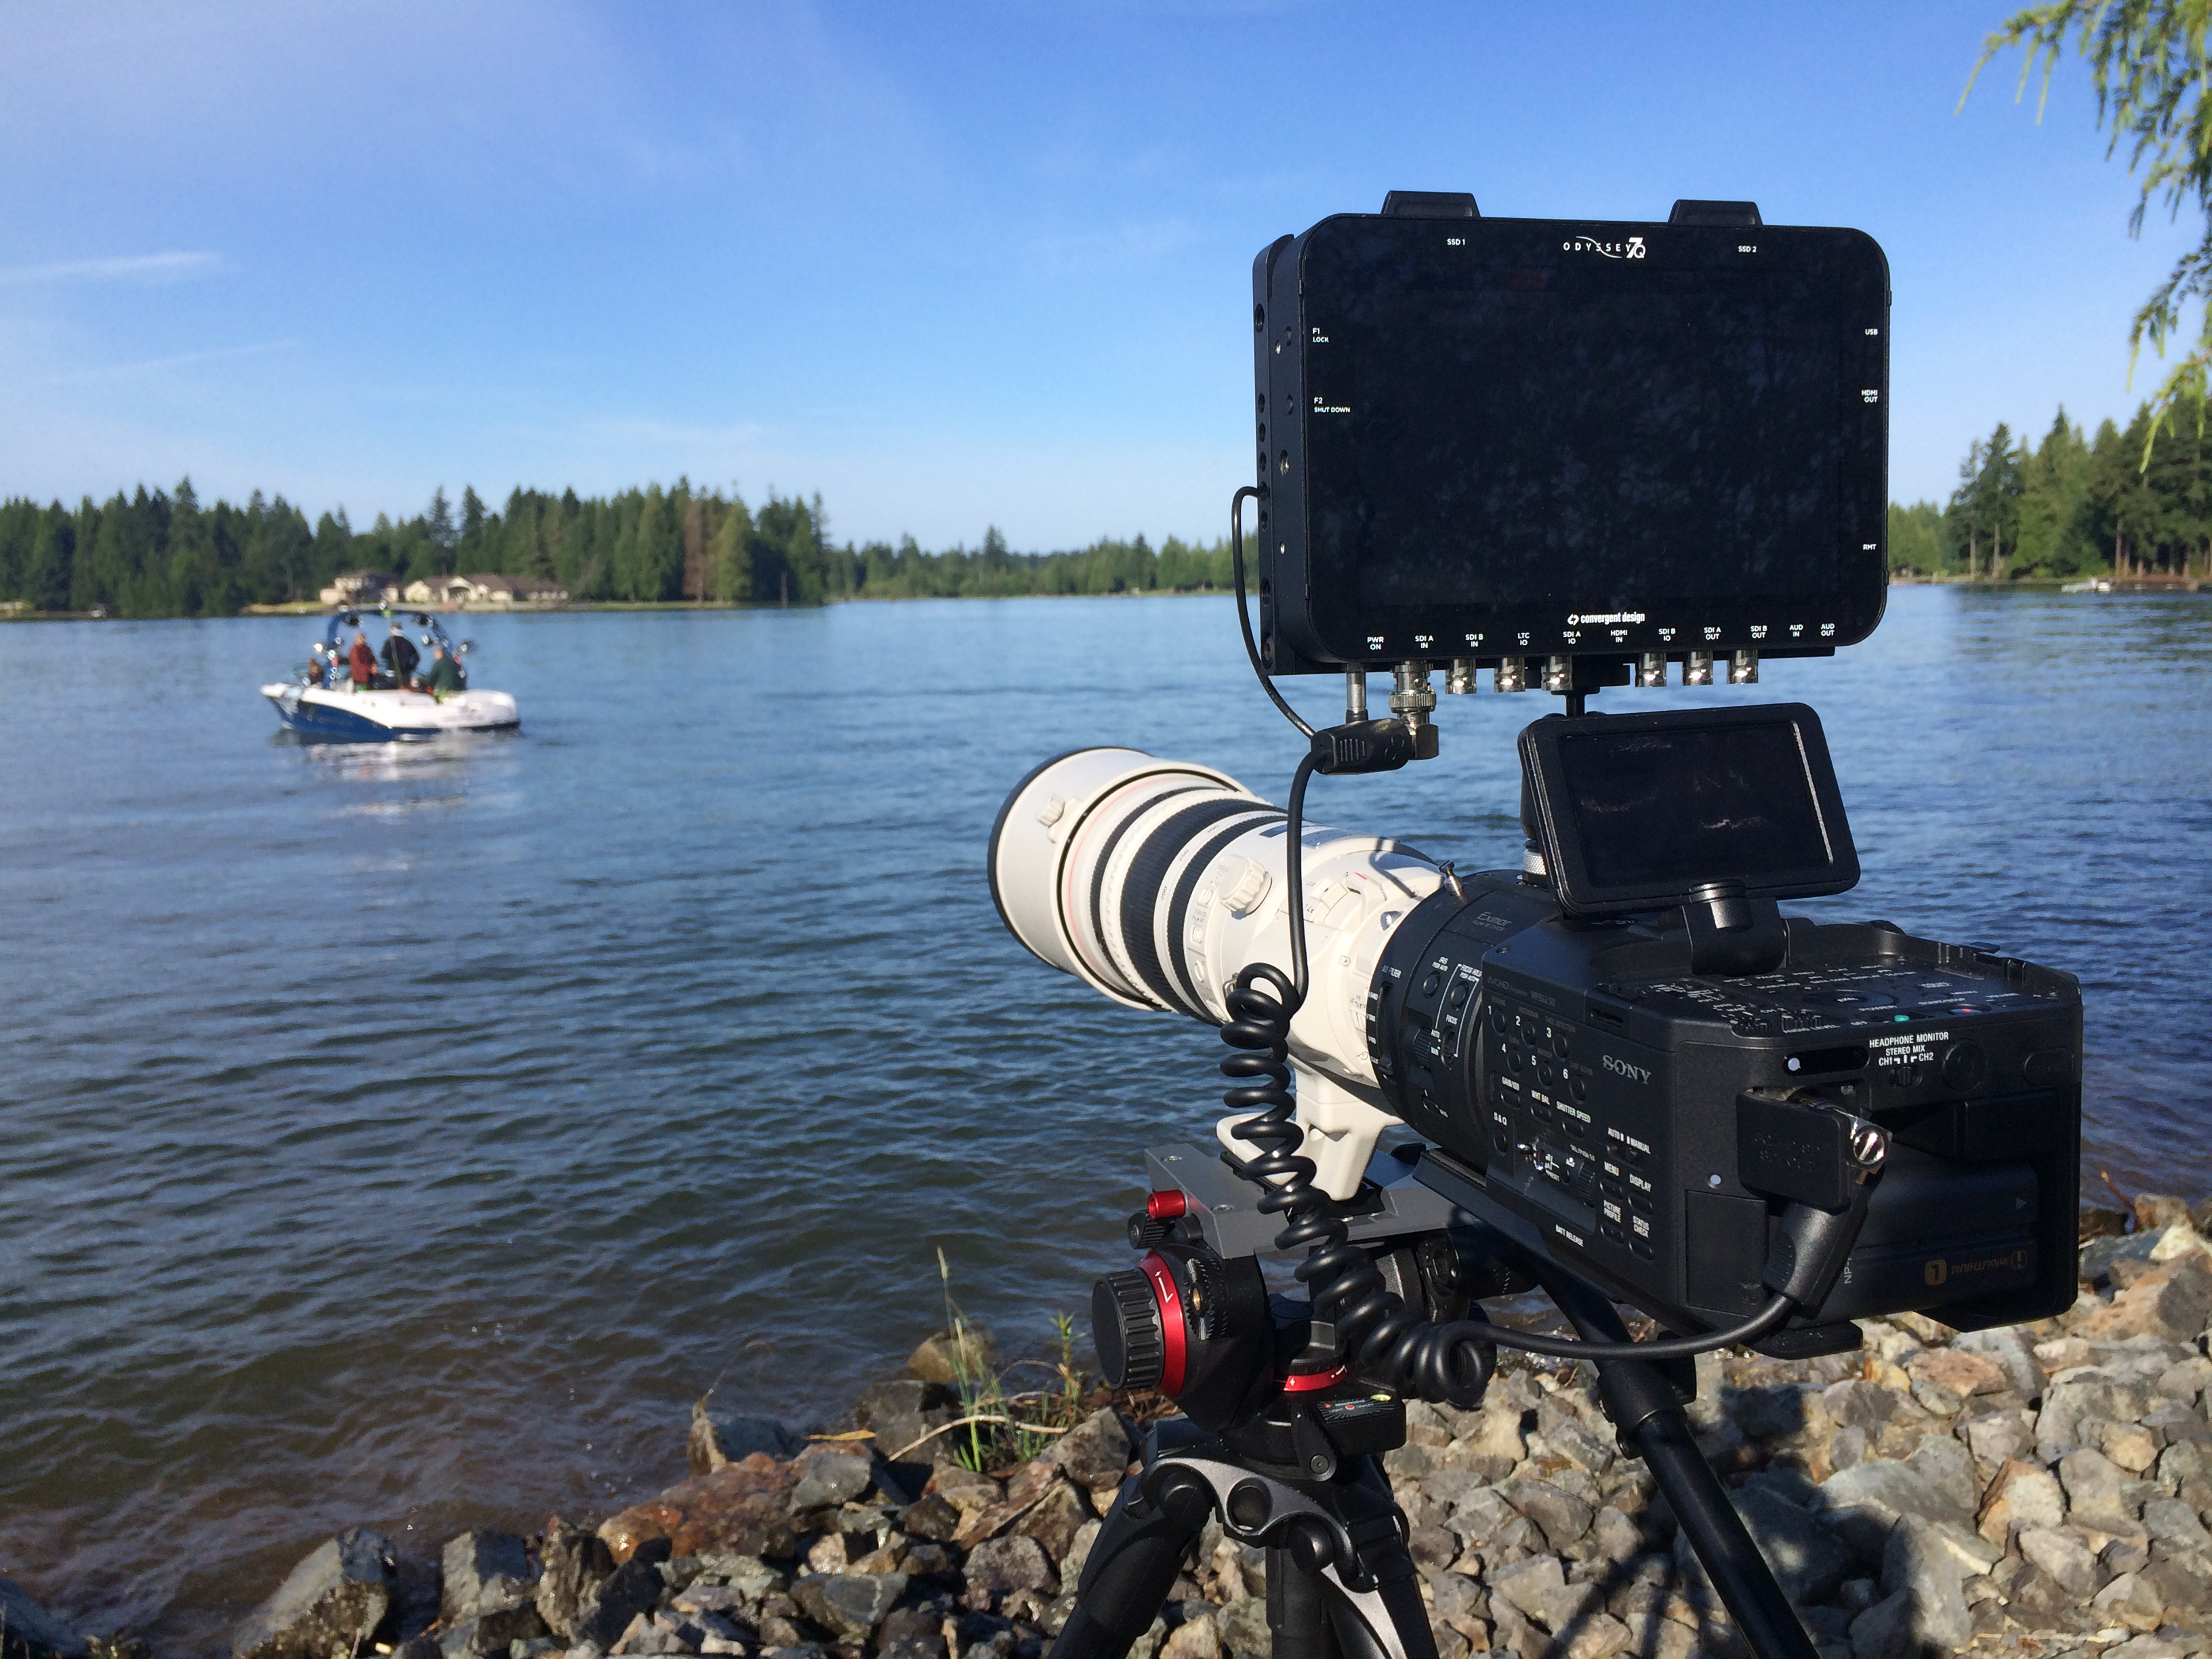 Wakeboarding with The Sony FS700 + Odyssey 7Q Setup